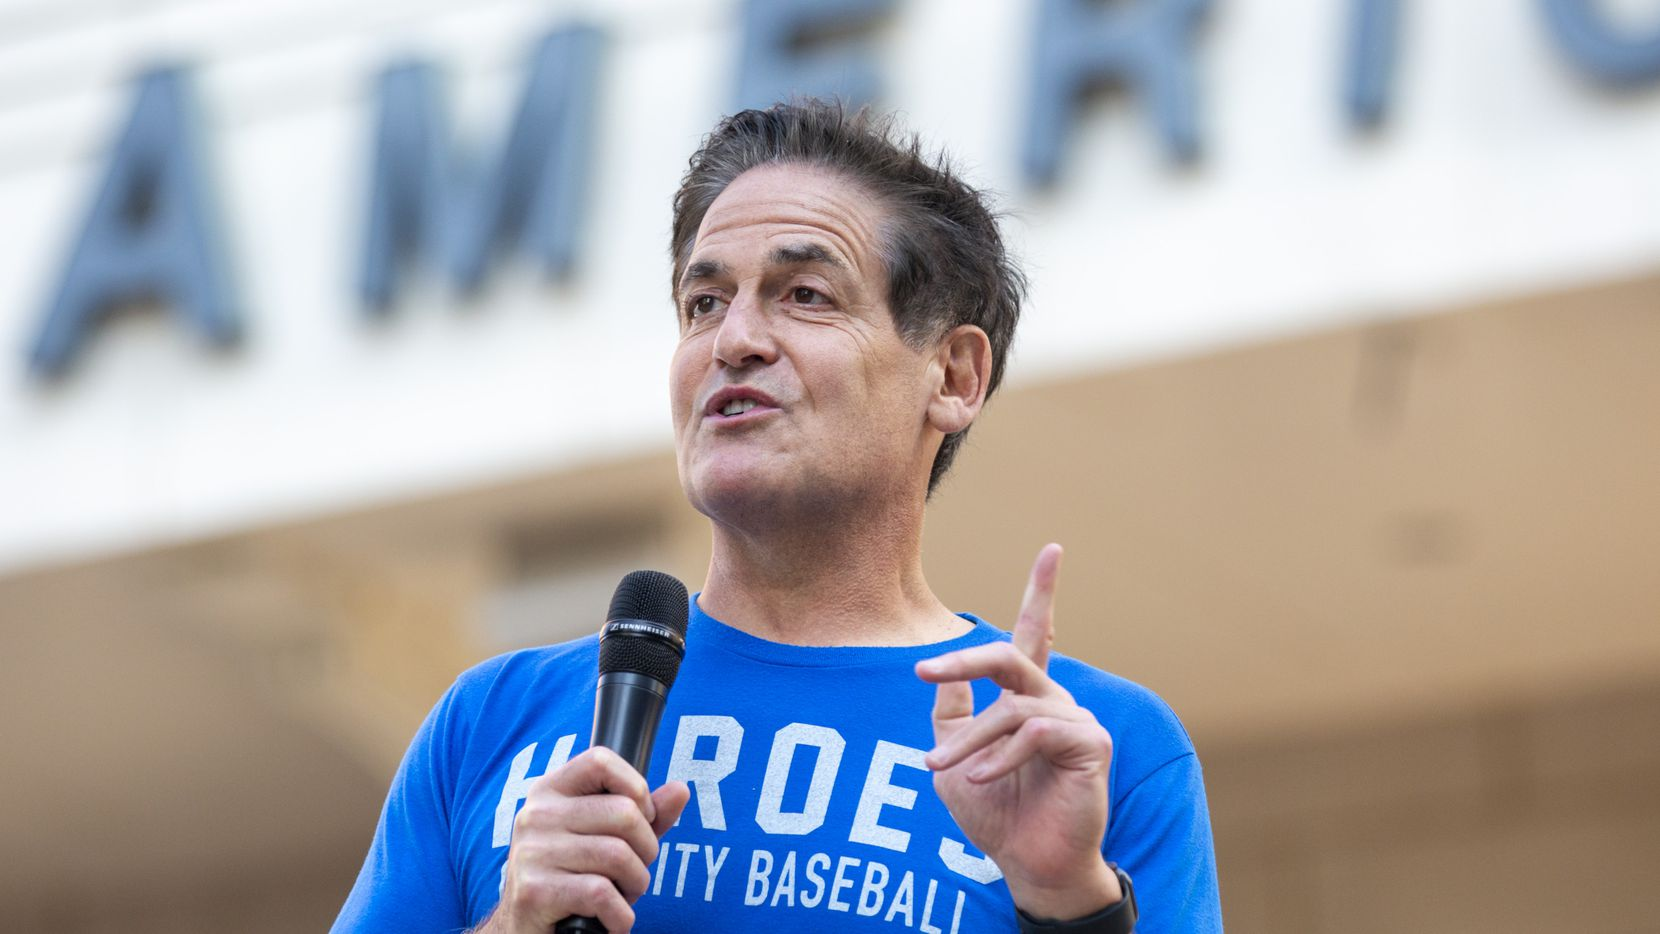 """Dallas Mavericks Owner Mark Cuban welcomes attendees during a """"Courageous Conversations"""" meet-up to discuss systemic racism at Victory Plaza outside the American Airlines Center  in Dallas on Tuesday, June 9, 2020."""